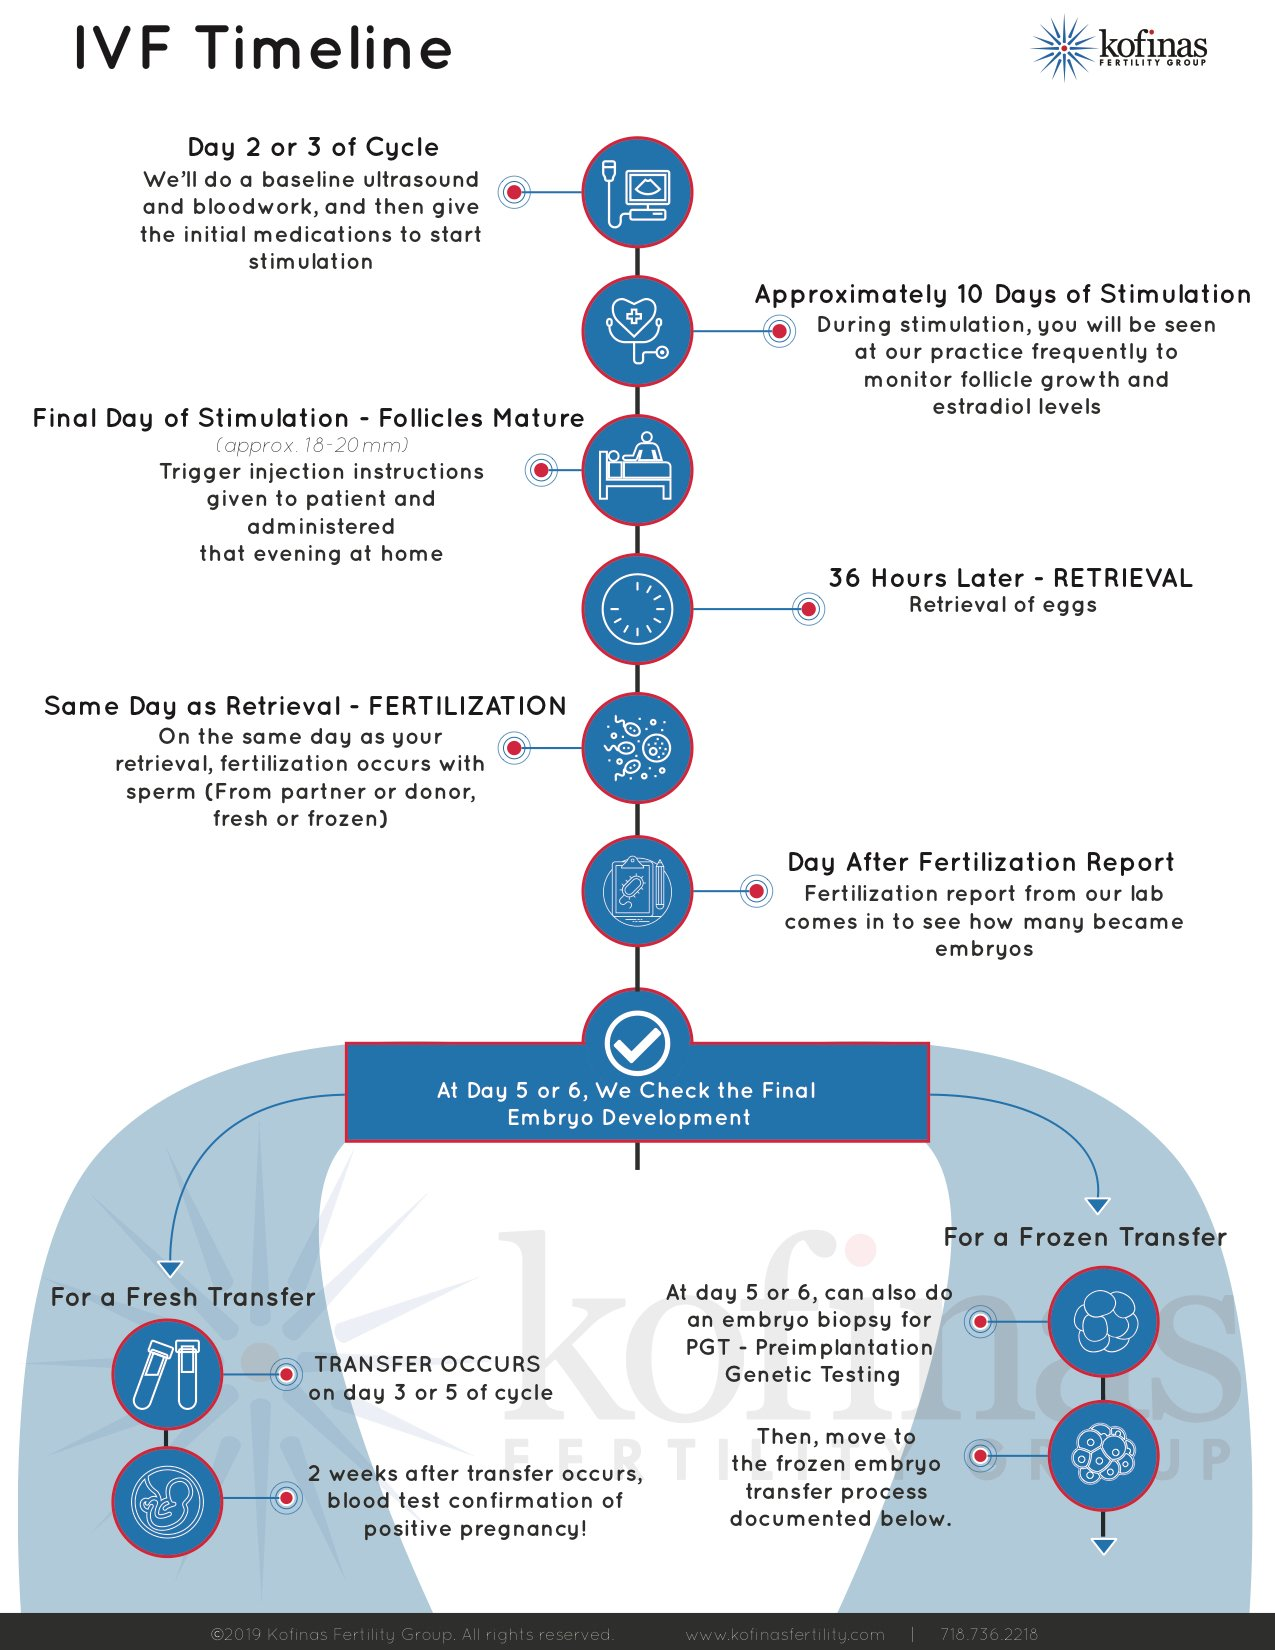 An In Vitro Fertilization Timeline